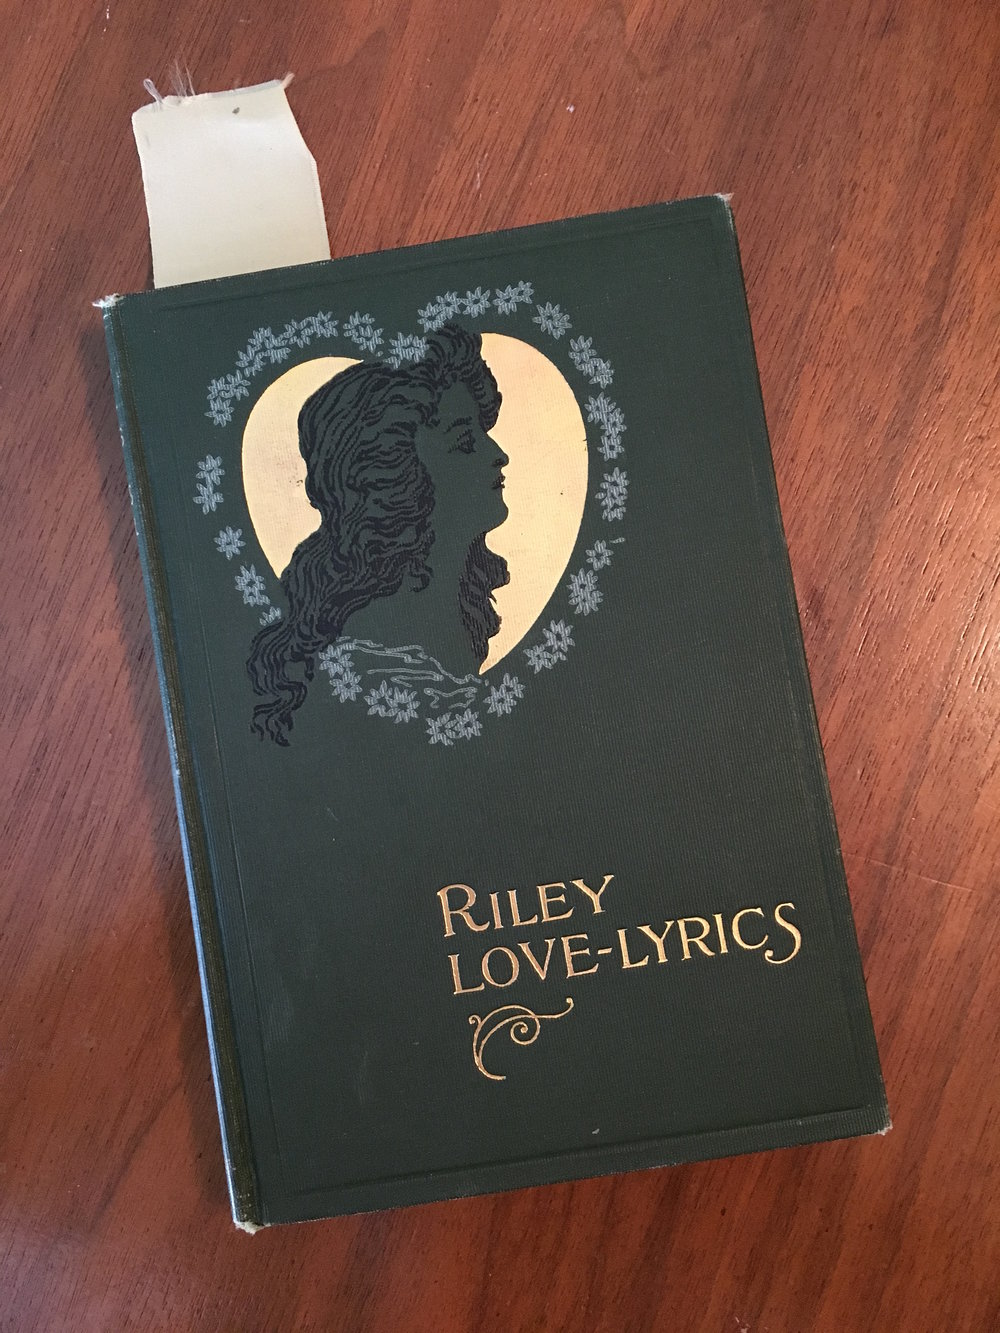 Riley Love-Lyrics, by John Whitcomb Riley 1905 edition